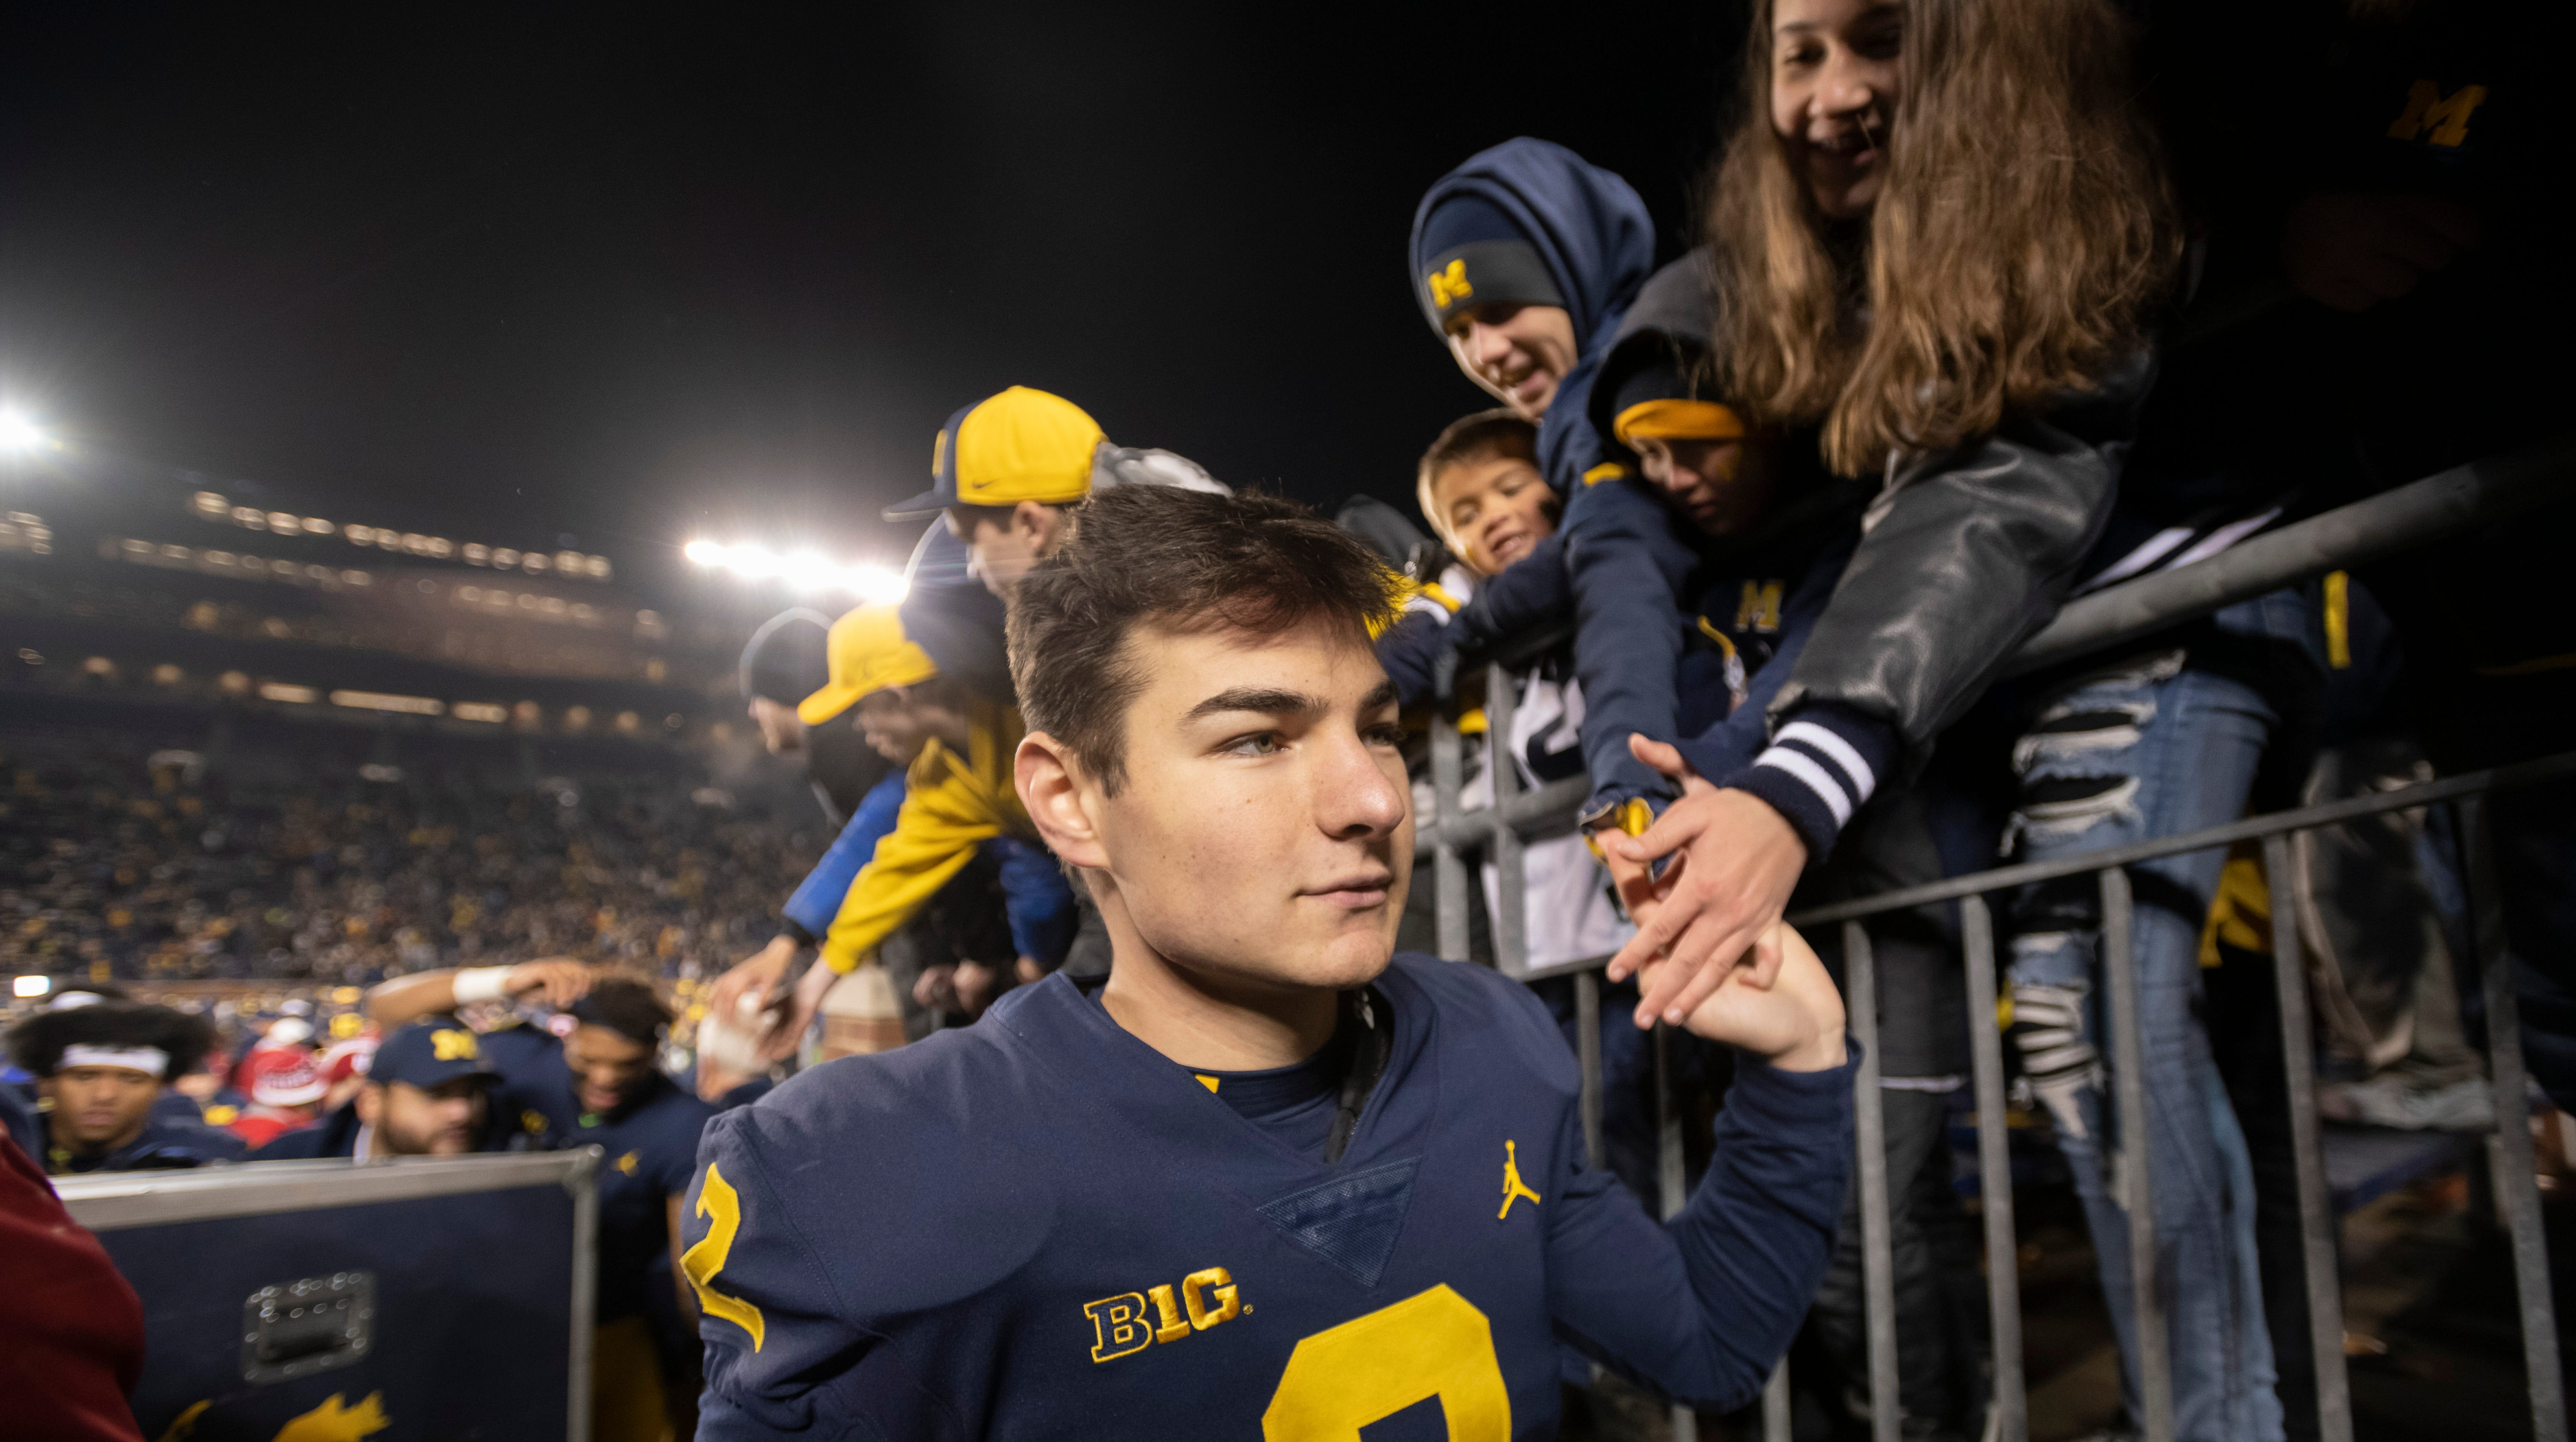 Michigan place kicker Jake Moody high-fives the fans after the game.